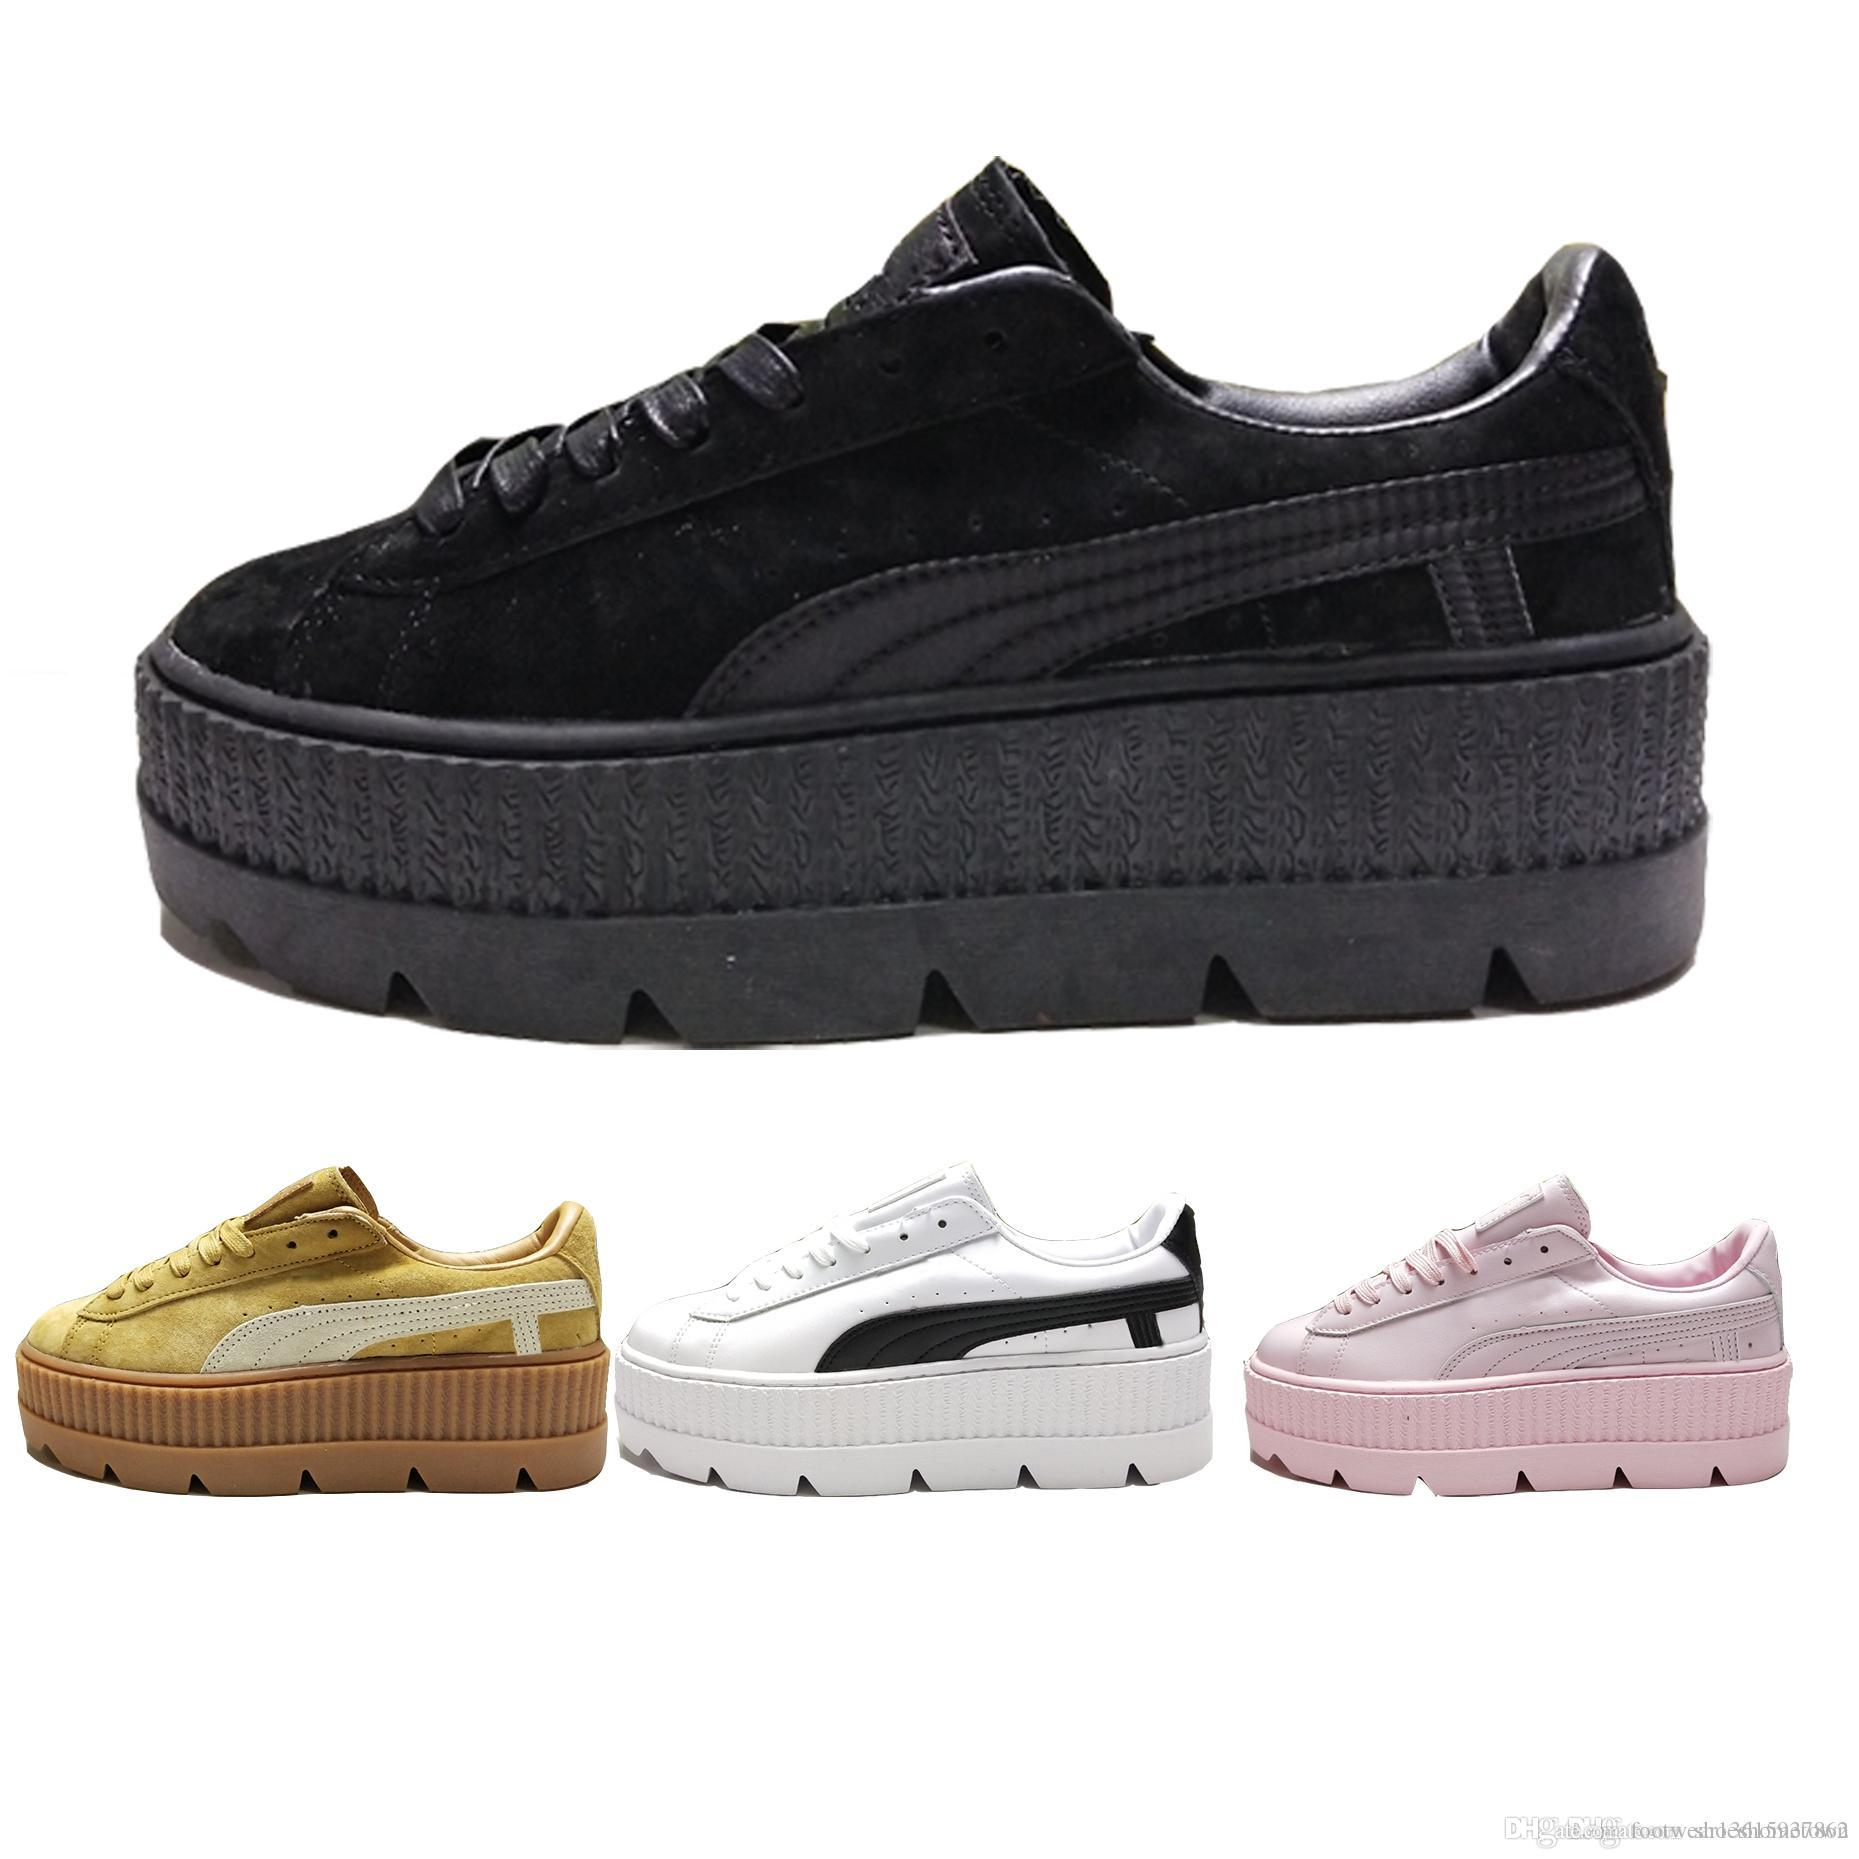 d05da5f700f7b8 NEW Suede Rihanna PUM Fenty Cleated Creepers Classic Platform Casual Shoes  Women Fasion Footwear Sneakers Black Pink White Wheat Size 36 39 Black  Shoes ...